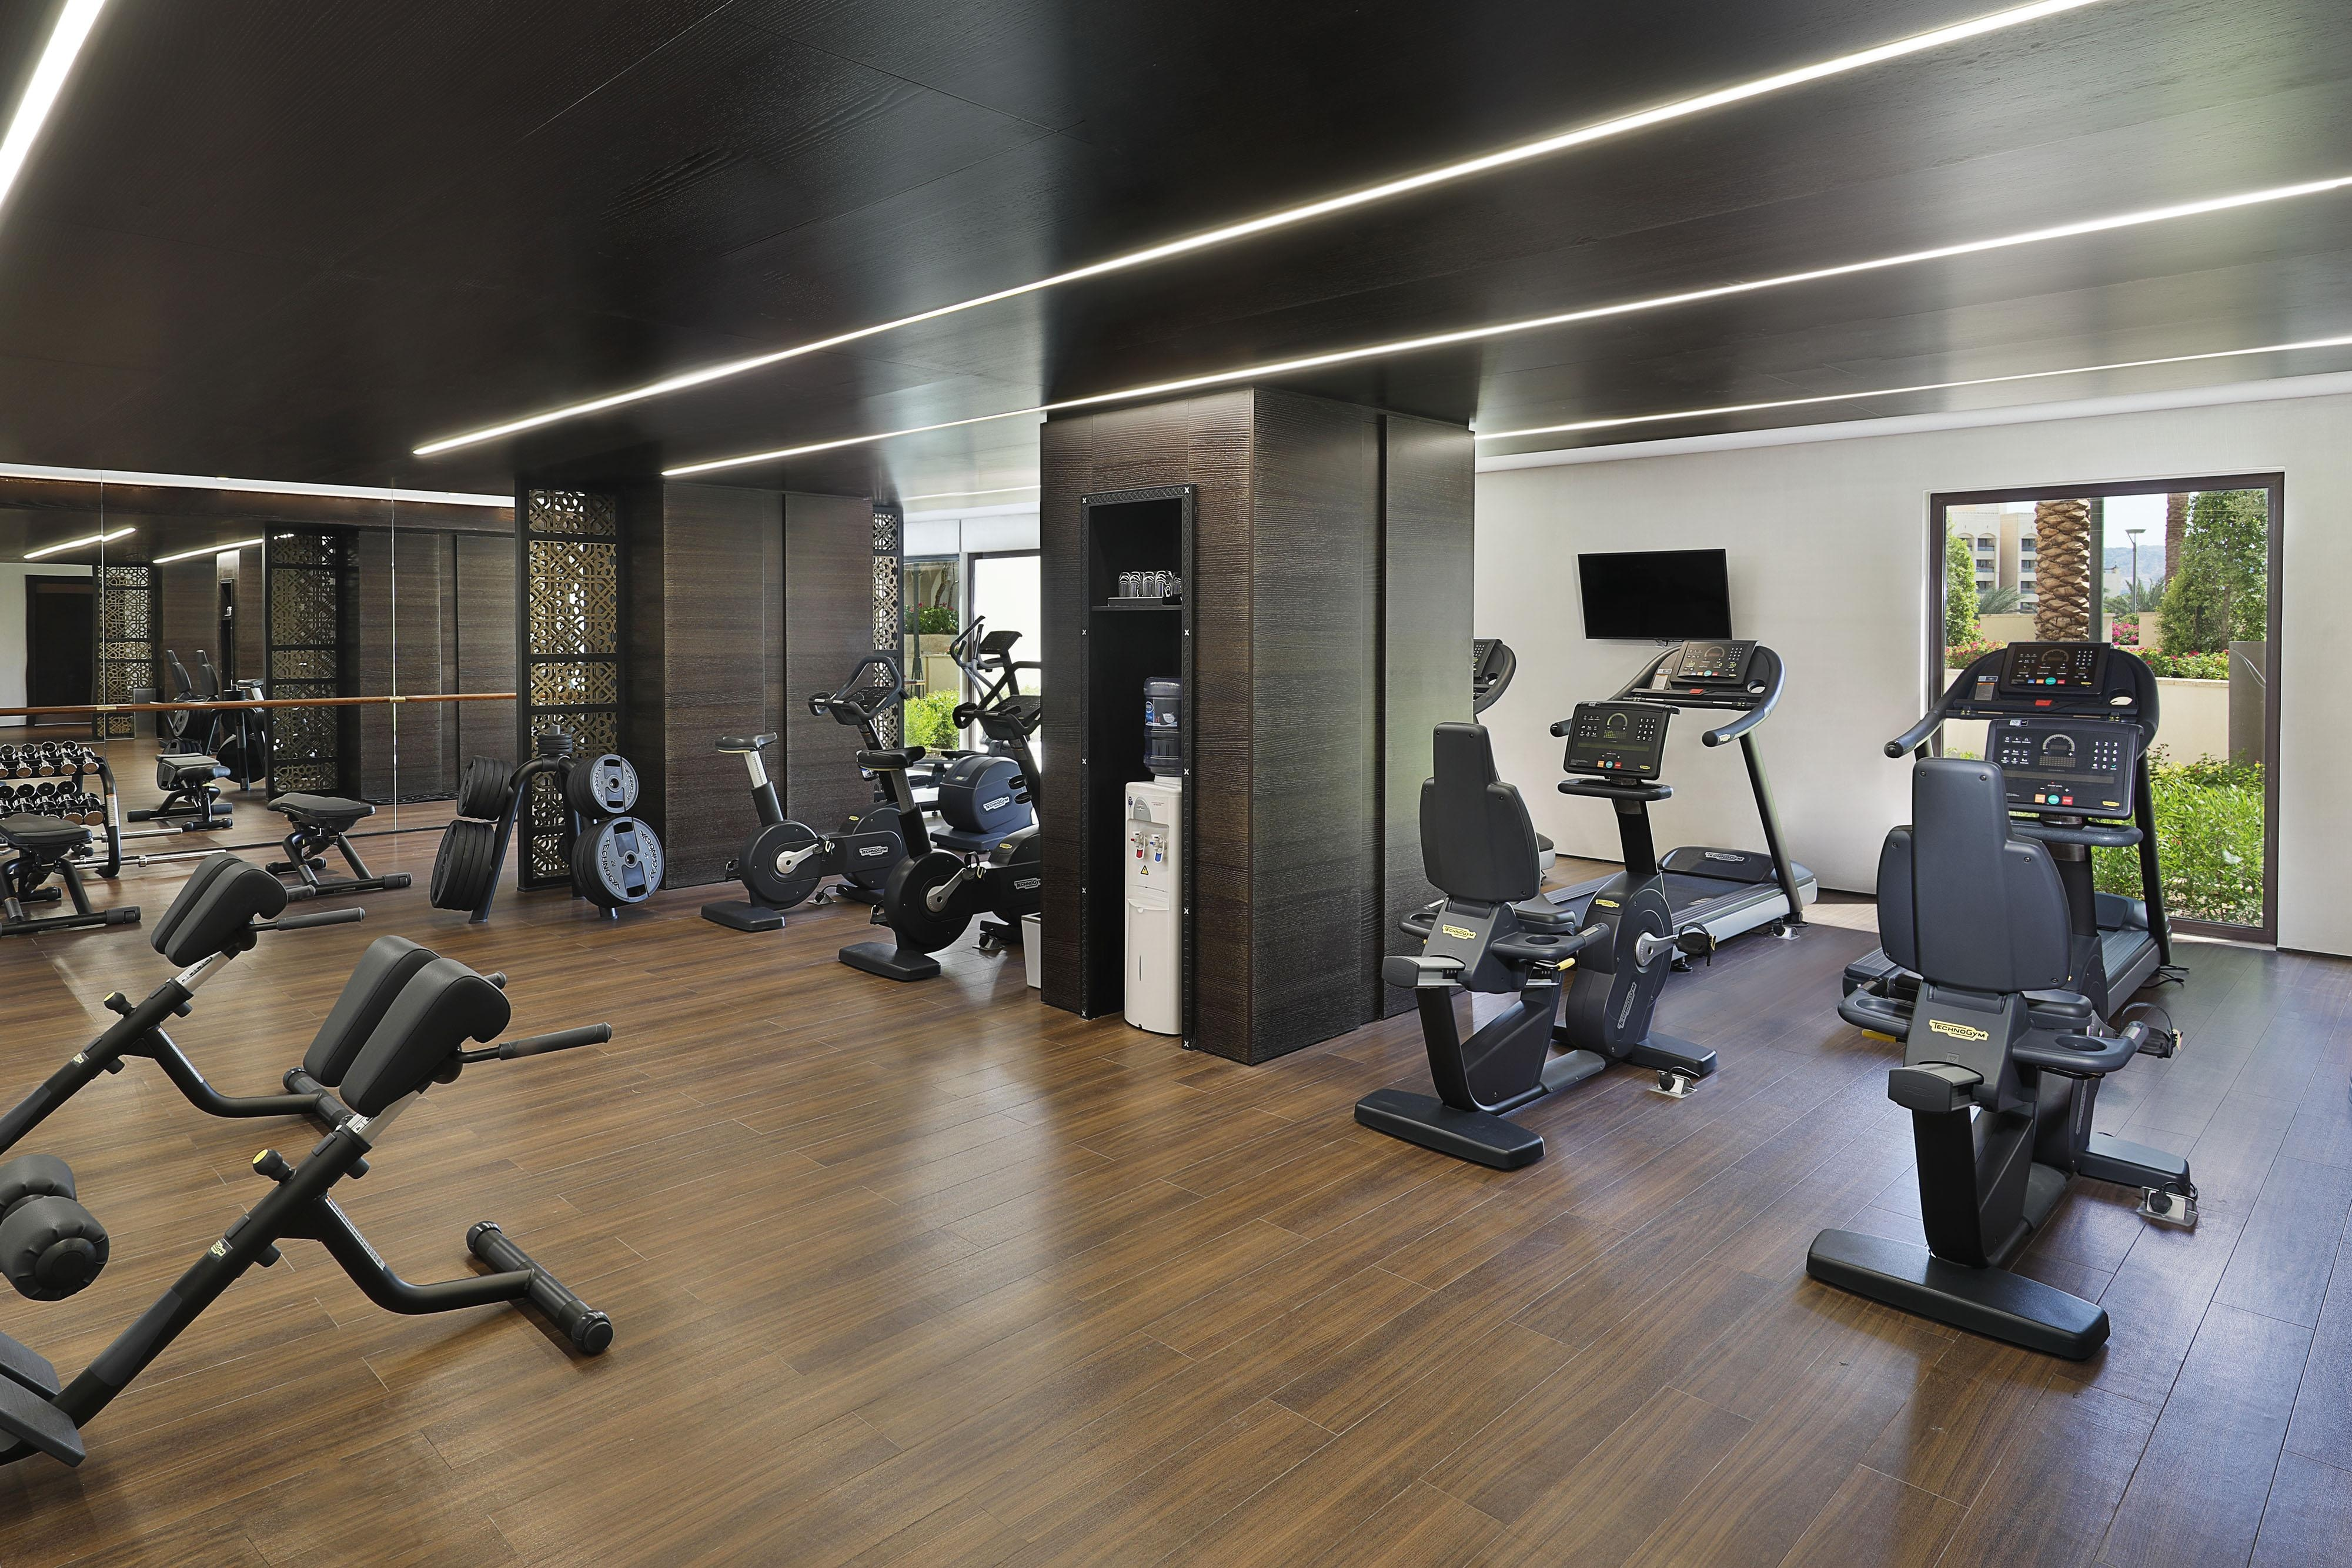 Our state-of-the-art fitness center is open 24 hours with showers and changing facilities.